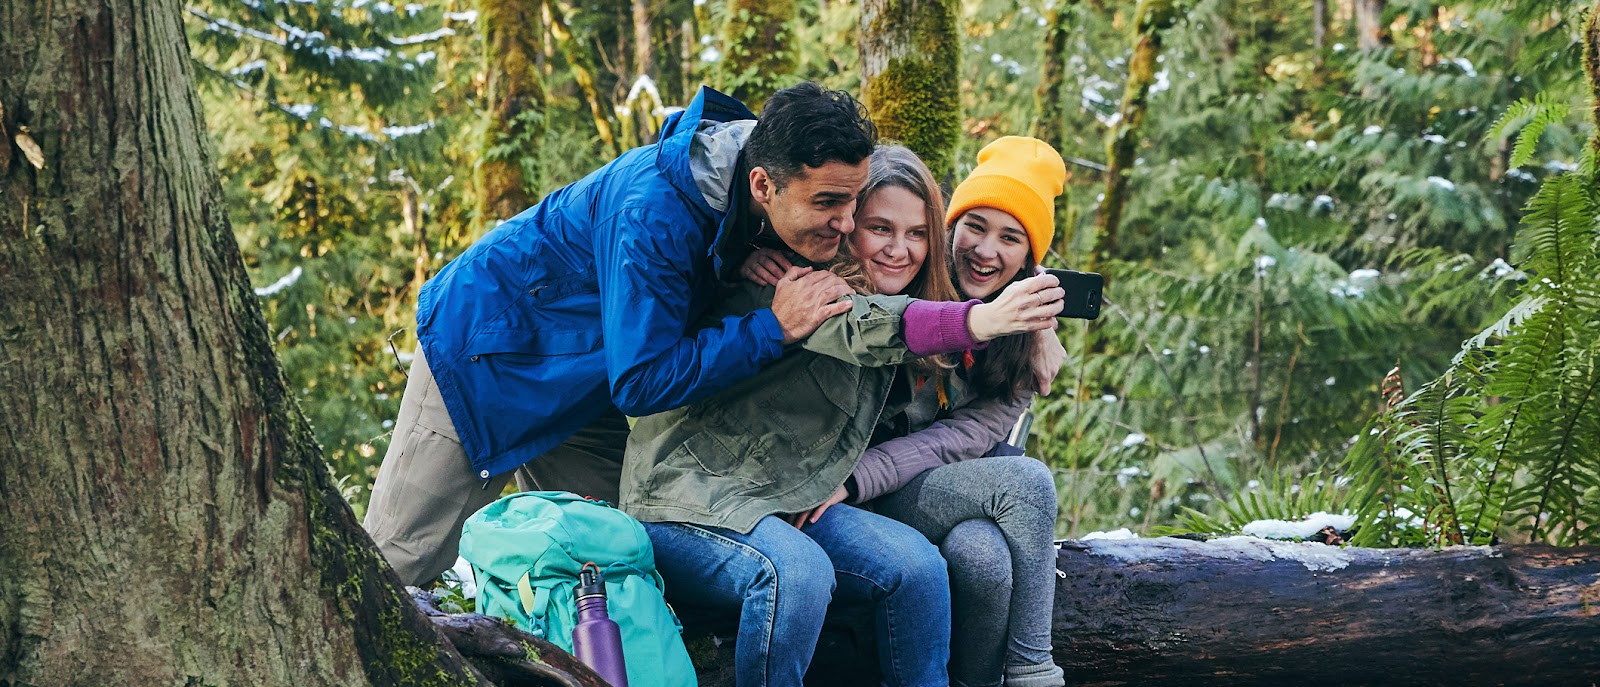 Three people huddled together taking a 'selfie' photograph